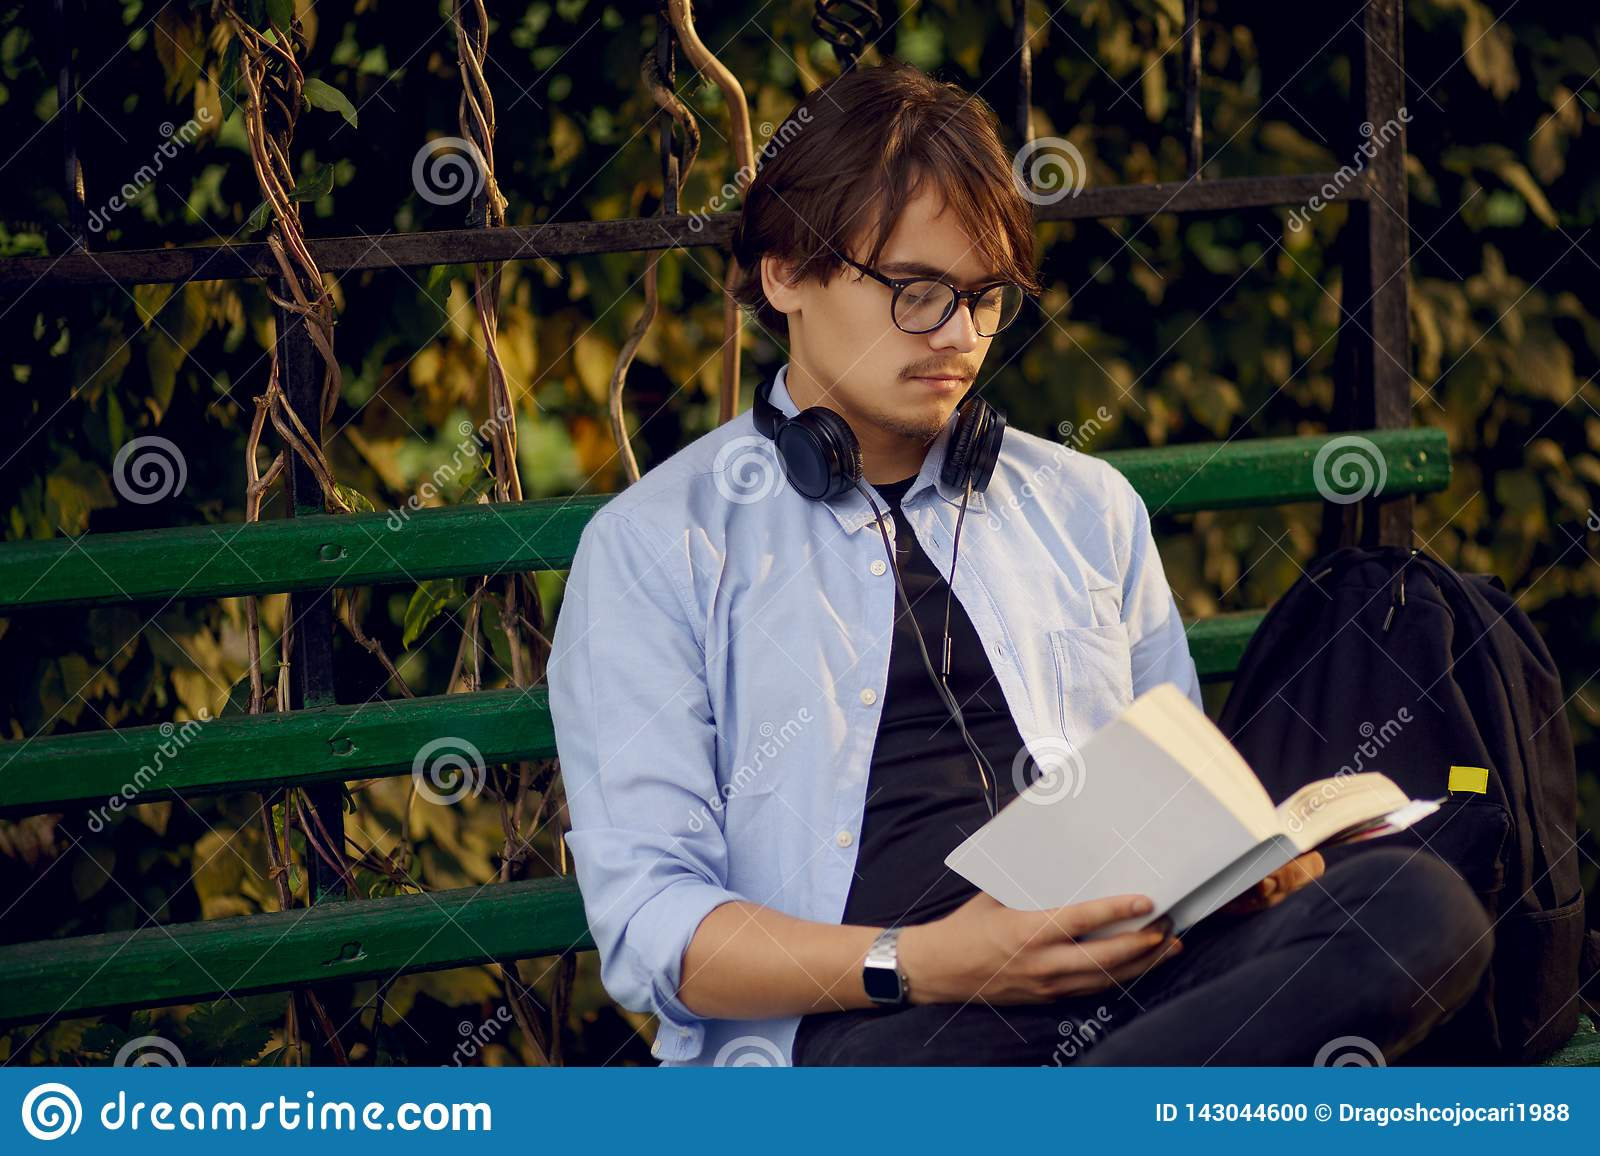 Portrait of a handsome young man in eyeglasses and headphones, read a book outside, isolated on a urban park background.